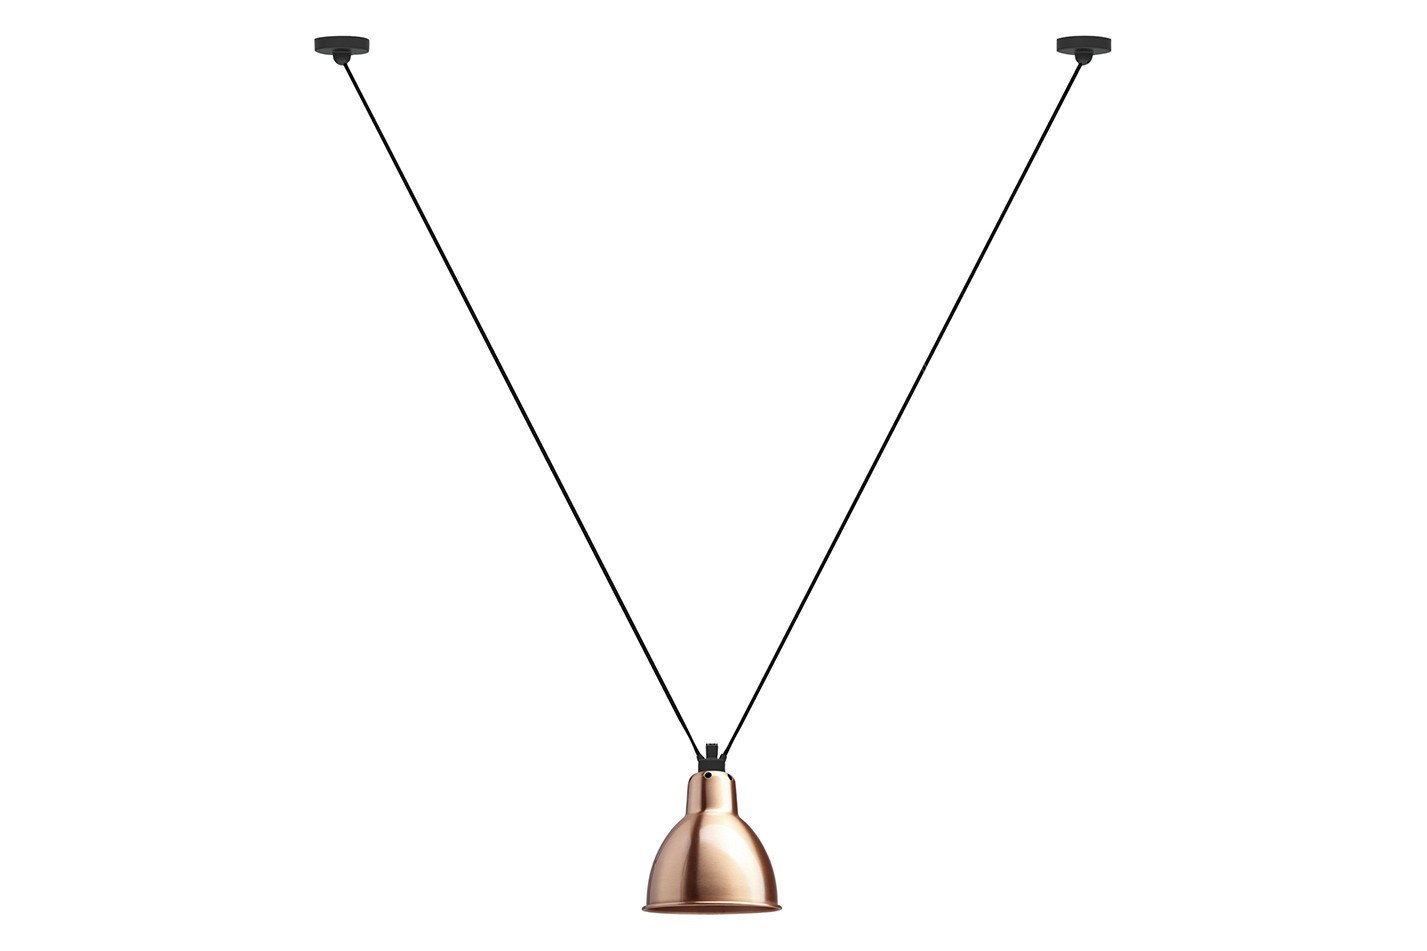 Les Acrobates De Gras 323 Round Shade Pendant Light Copper